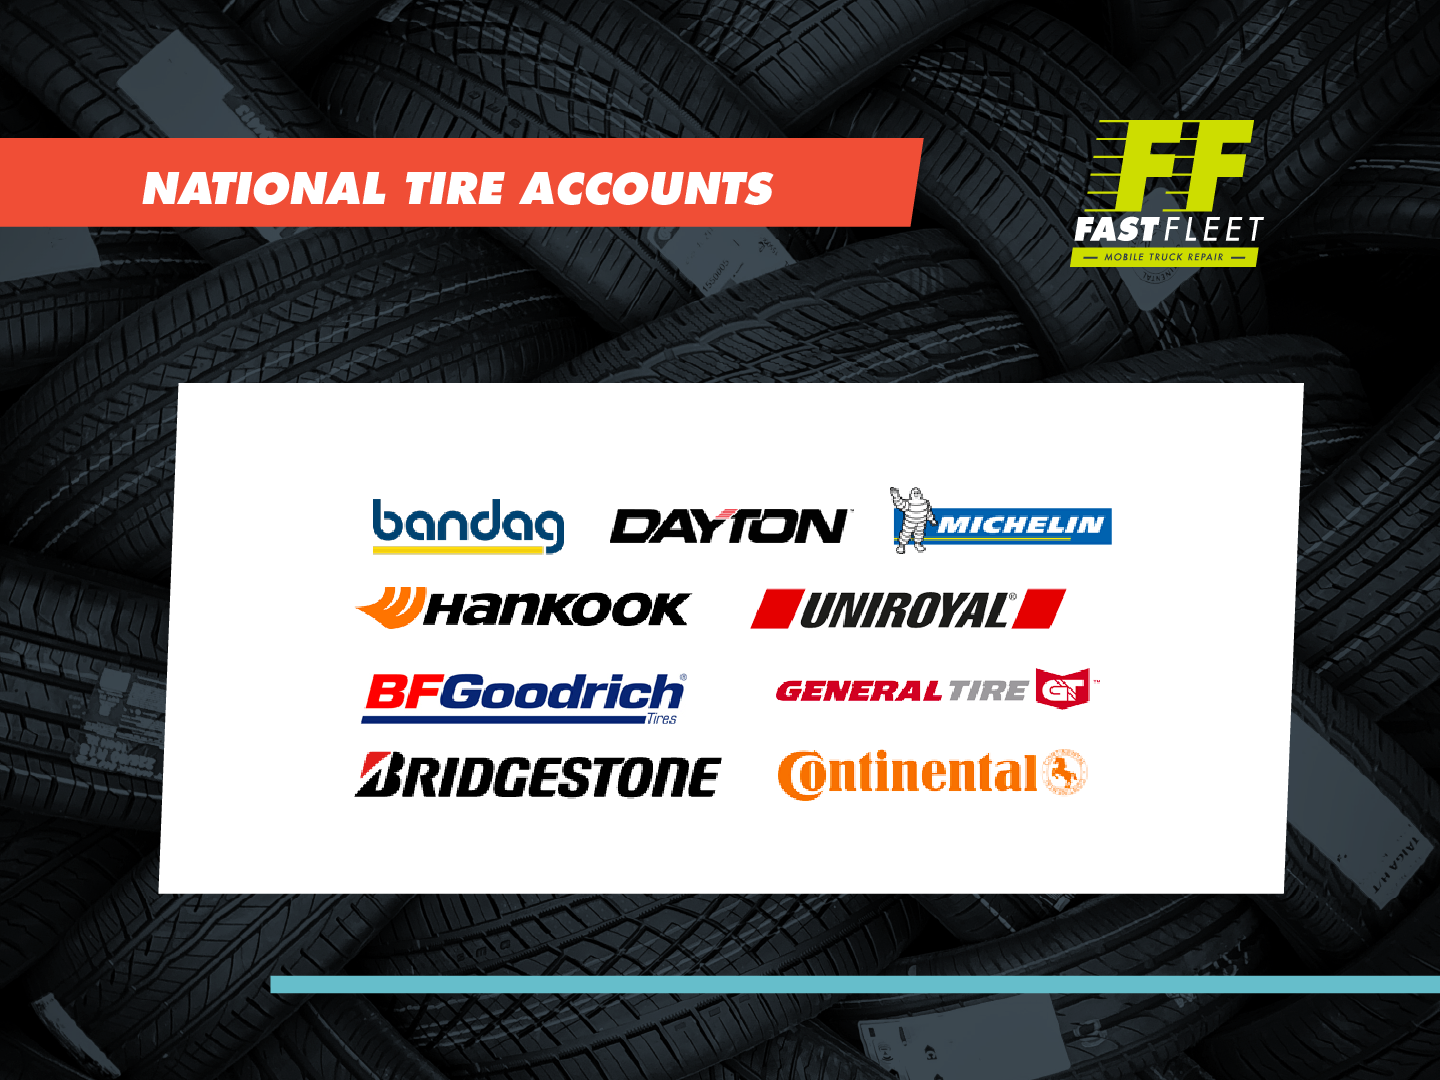 National Tire Accounts Grahpic